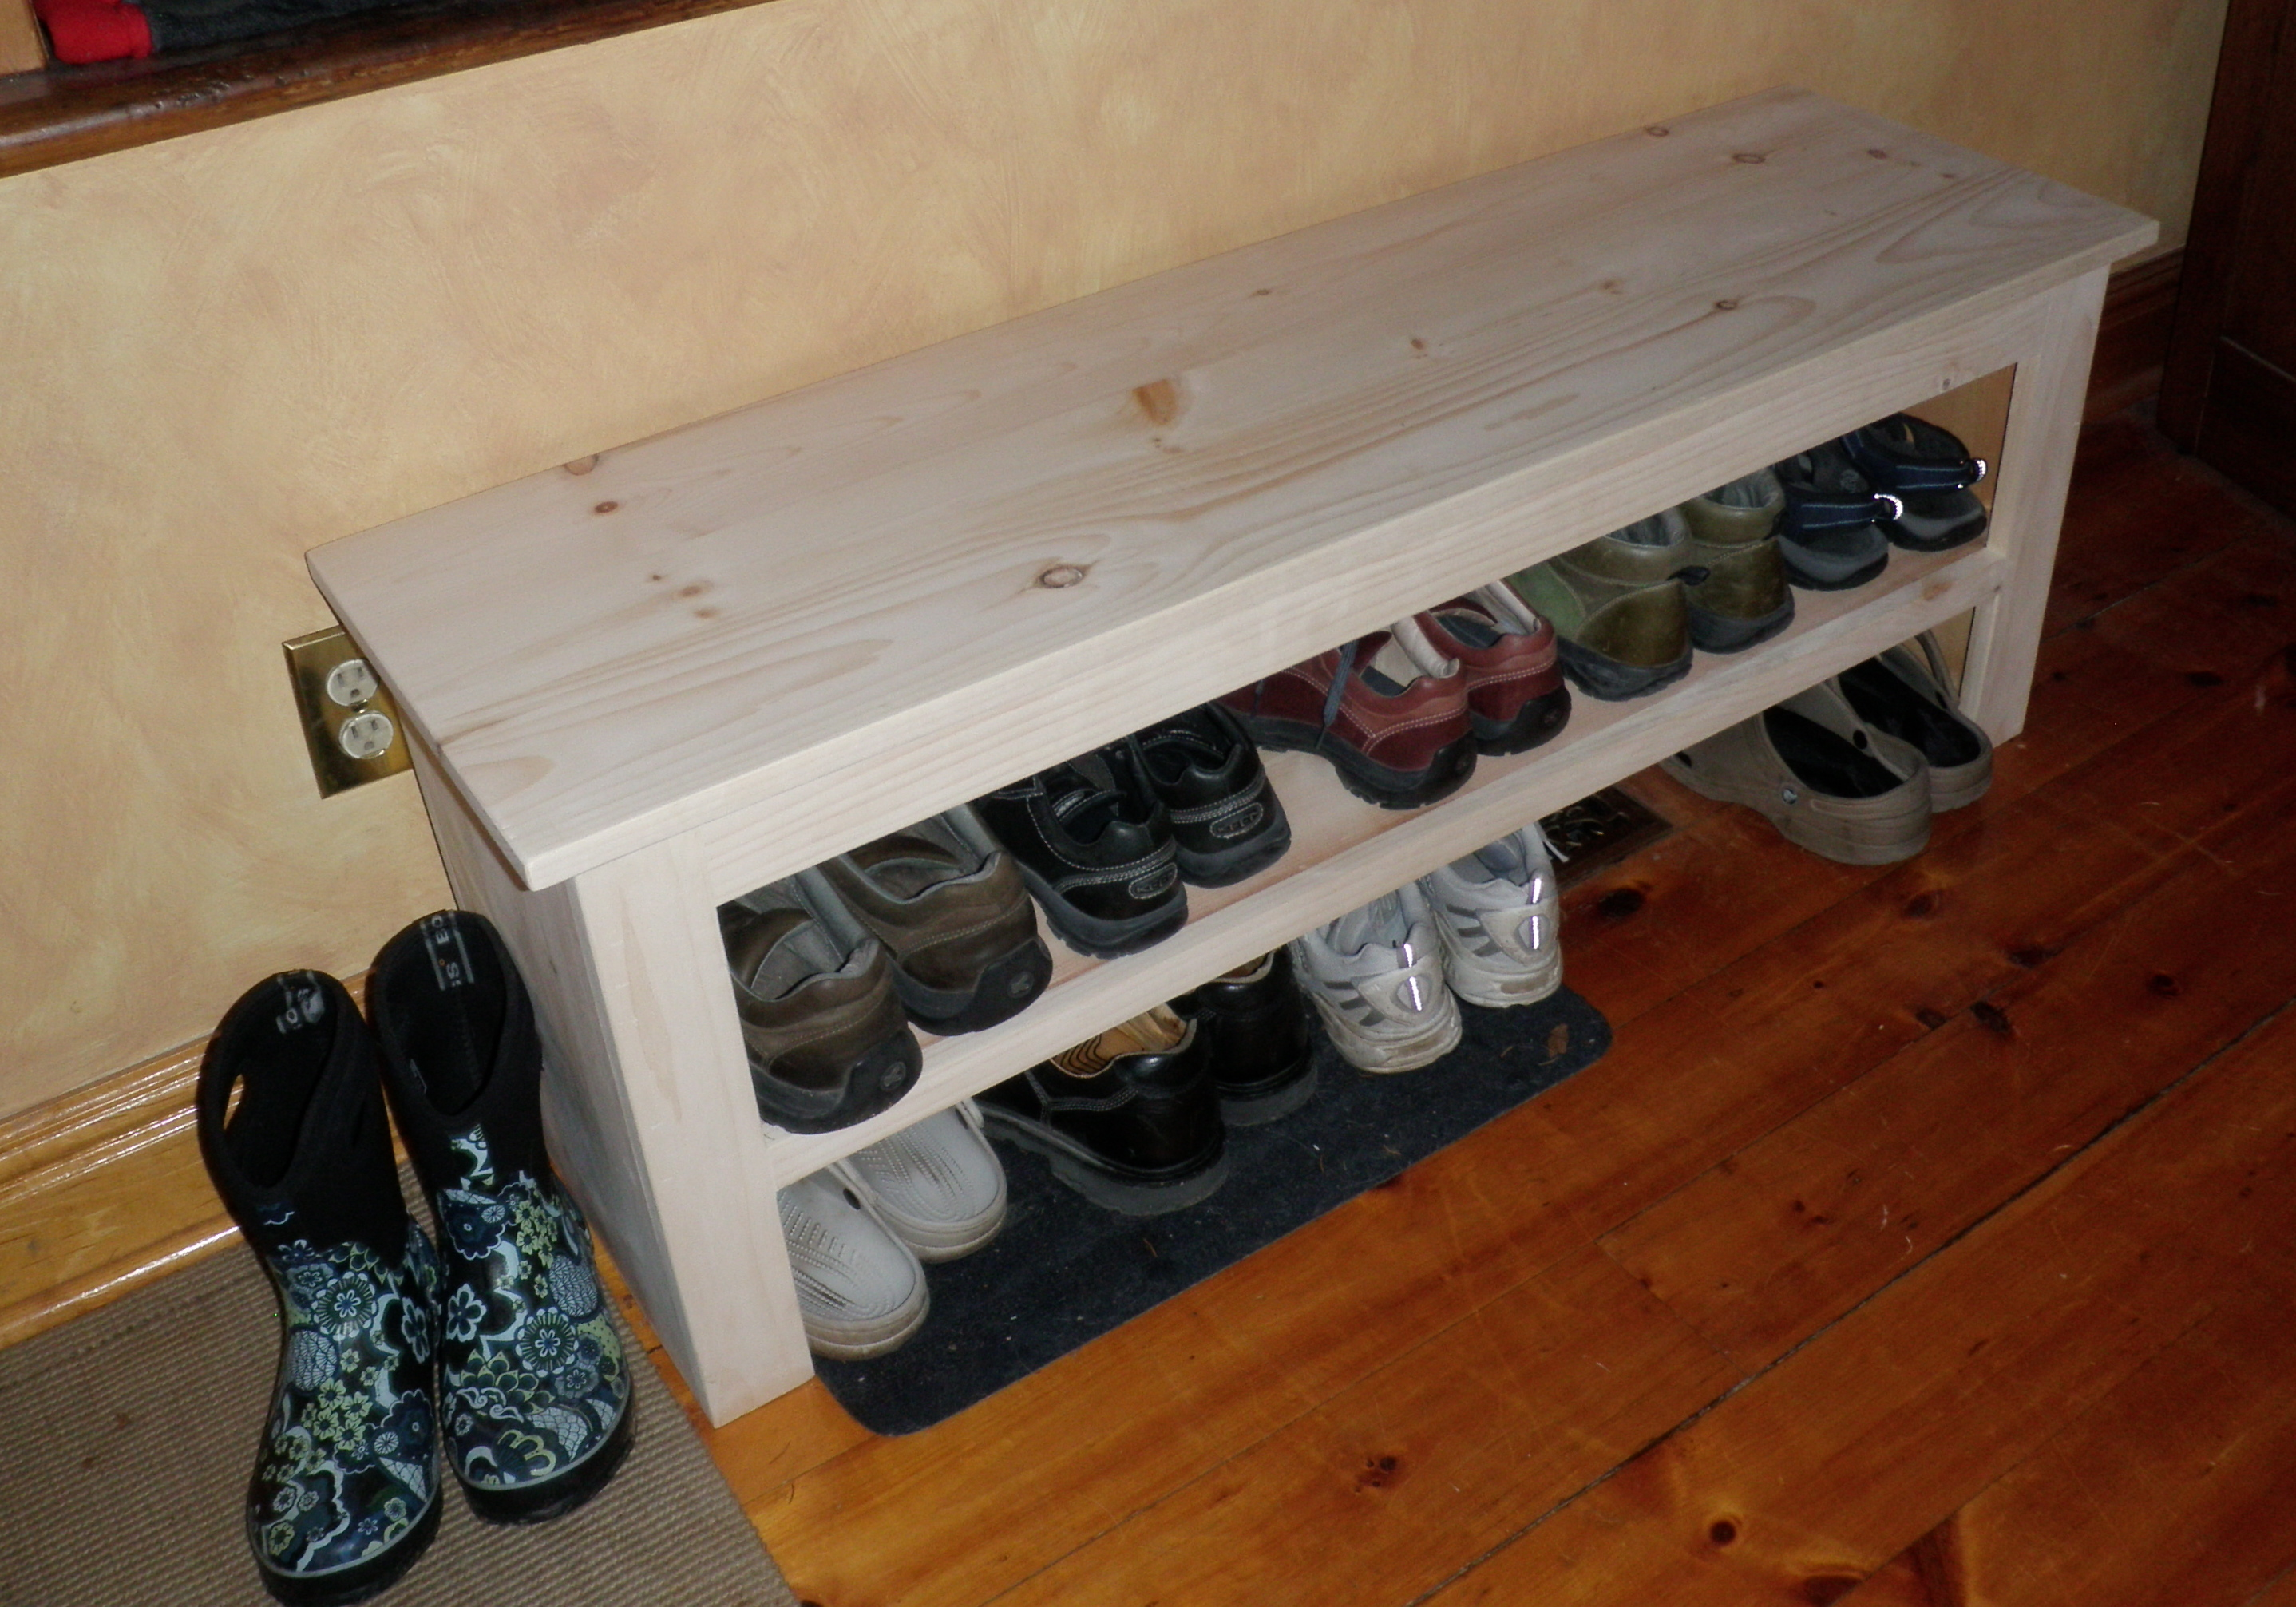 Shoe storage bench ideas plans diy free download diy travel trailer plans woodworking products Entryway shoe storage bench